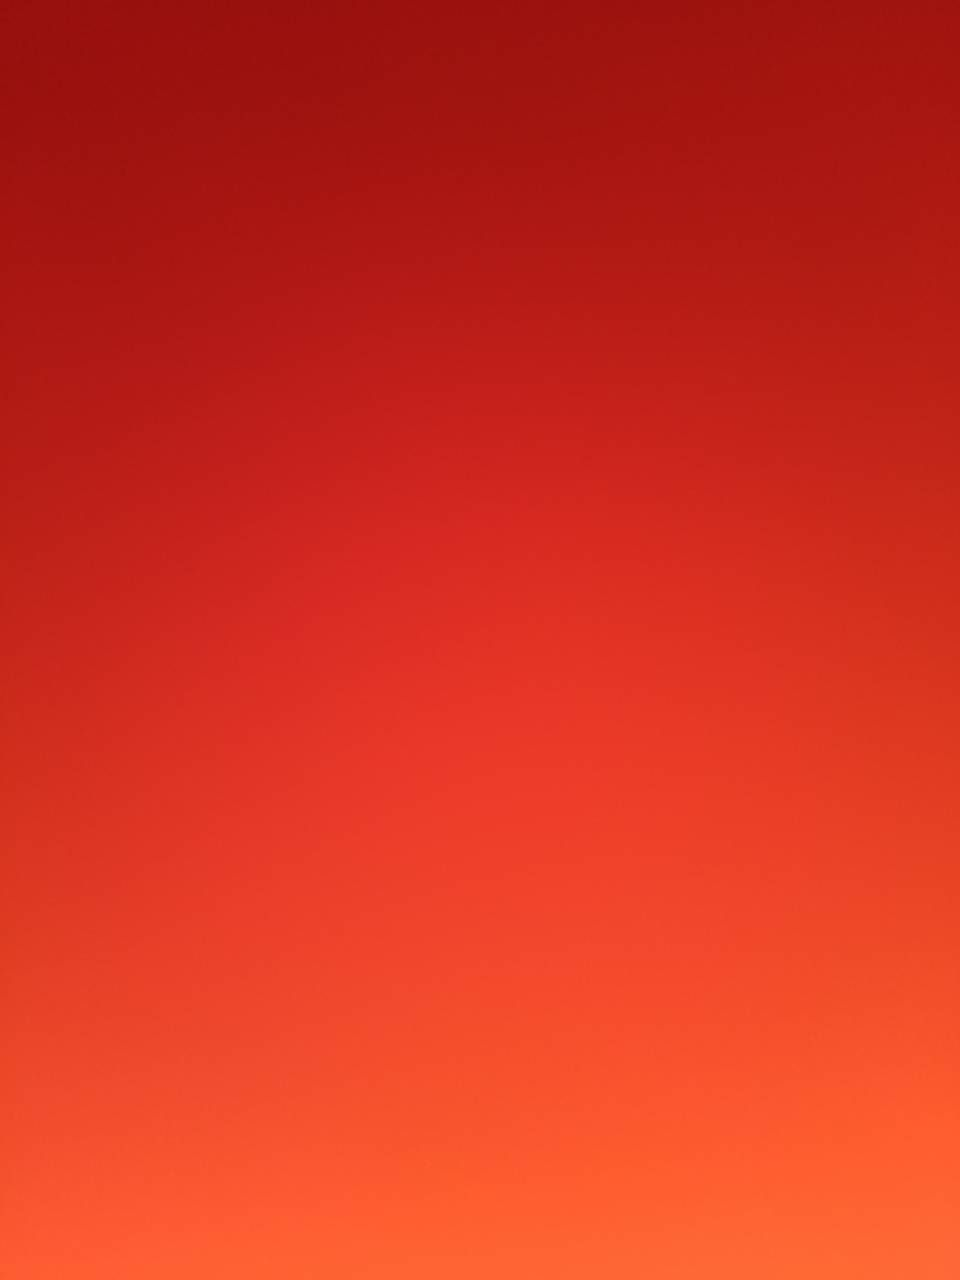 download red screen wallpaper by nathanmurphy583